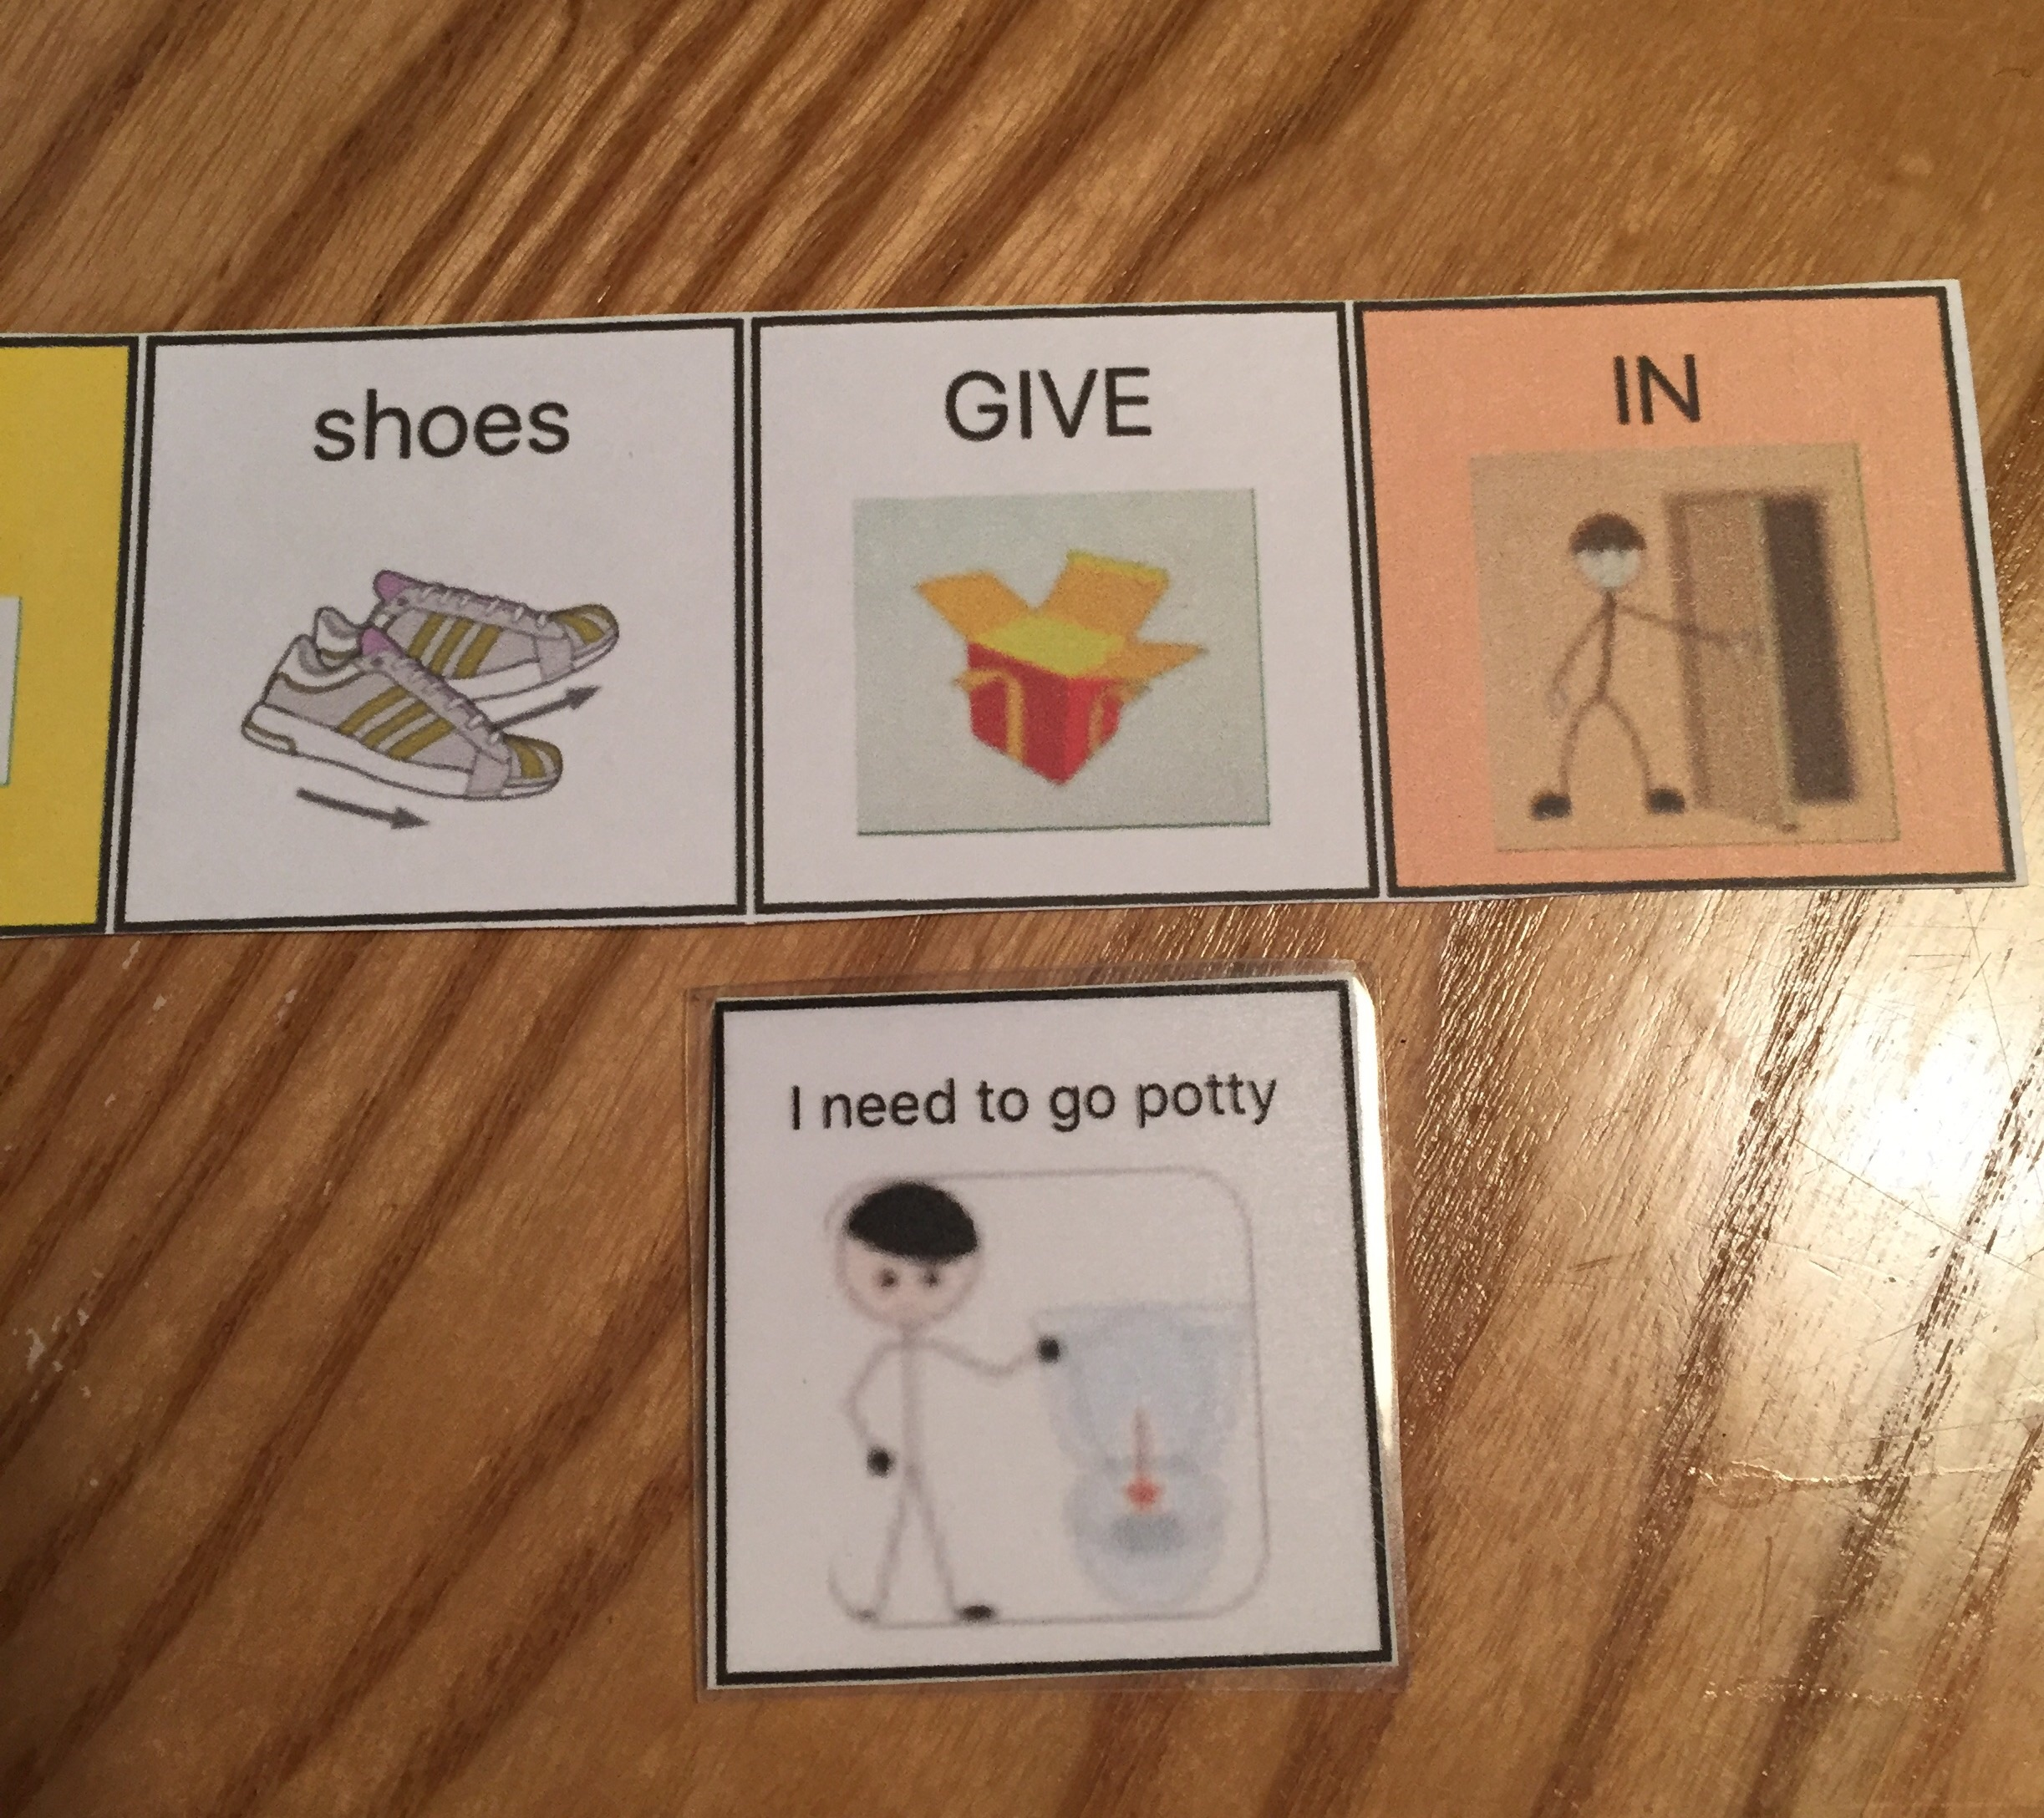 """For printing quality comparison: GIVE, IN, and """"I need to go potty"""" were created by printing cropped images from SFY message window. Shoes was created on Custom Boards."""